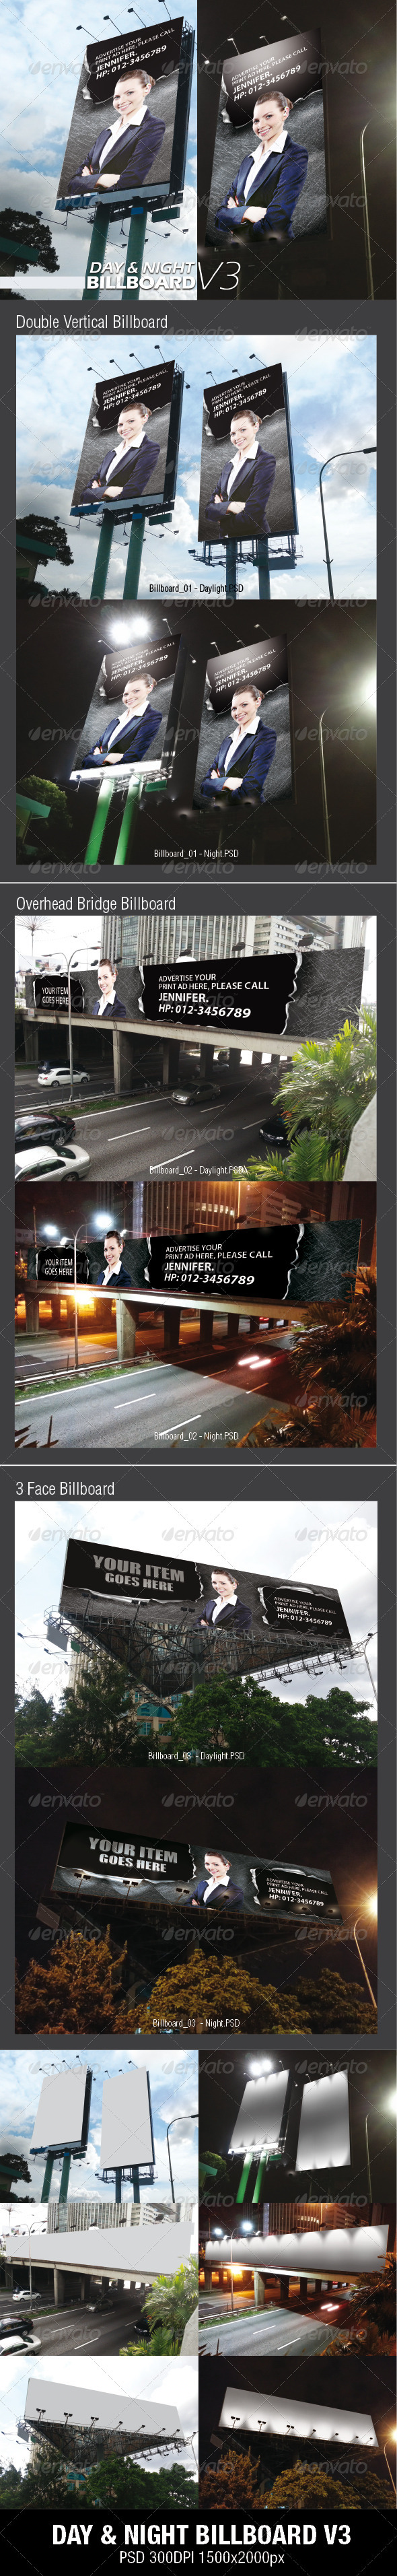 GraphicRiver DAY & NIGHT BILLBOARD V3 3666246